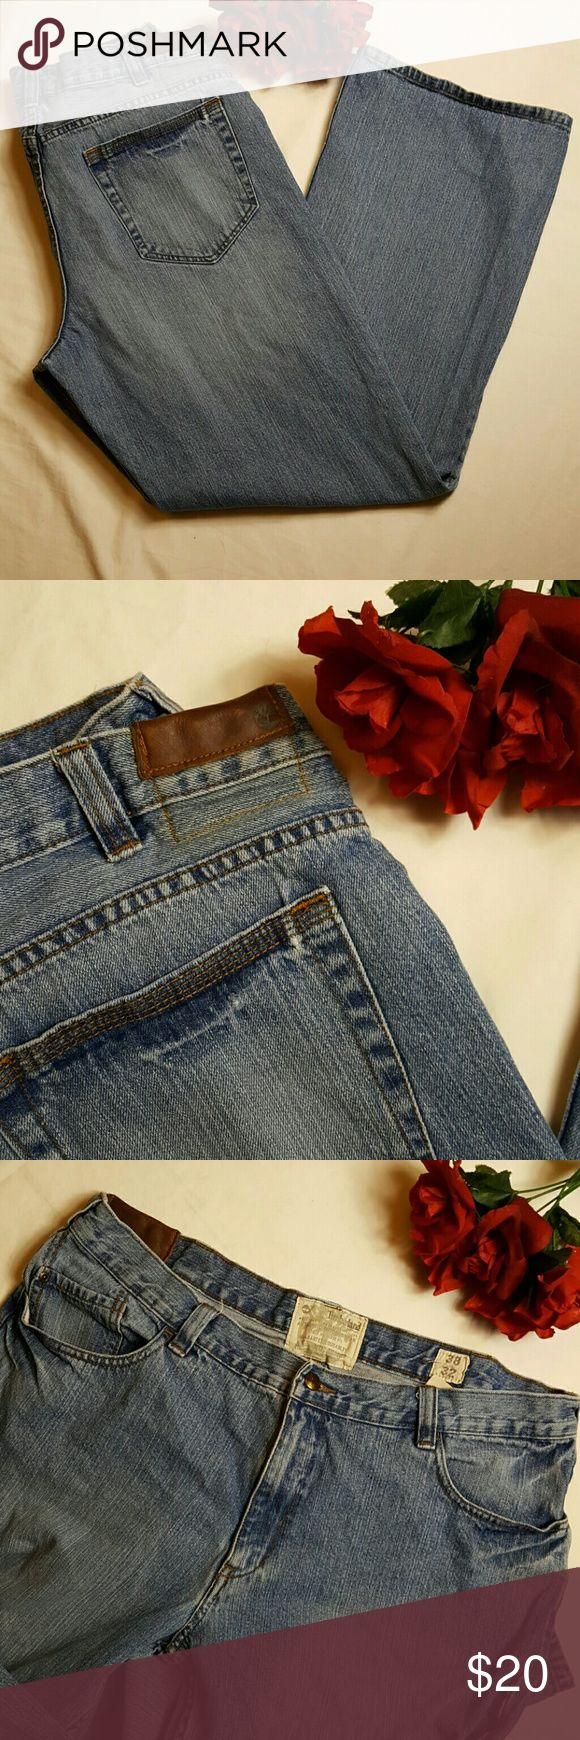 """Timberland Men's Jeans Gently worn. Approximate Measurements: Waist: 38"""" Inseam: 32"""" Timberland Jeans Straight"""